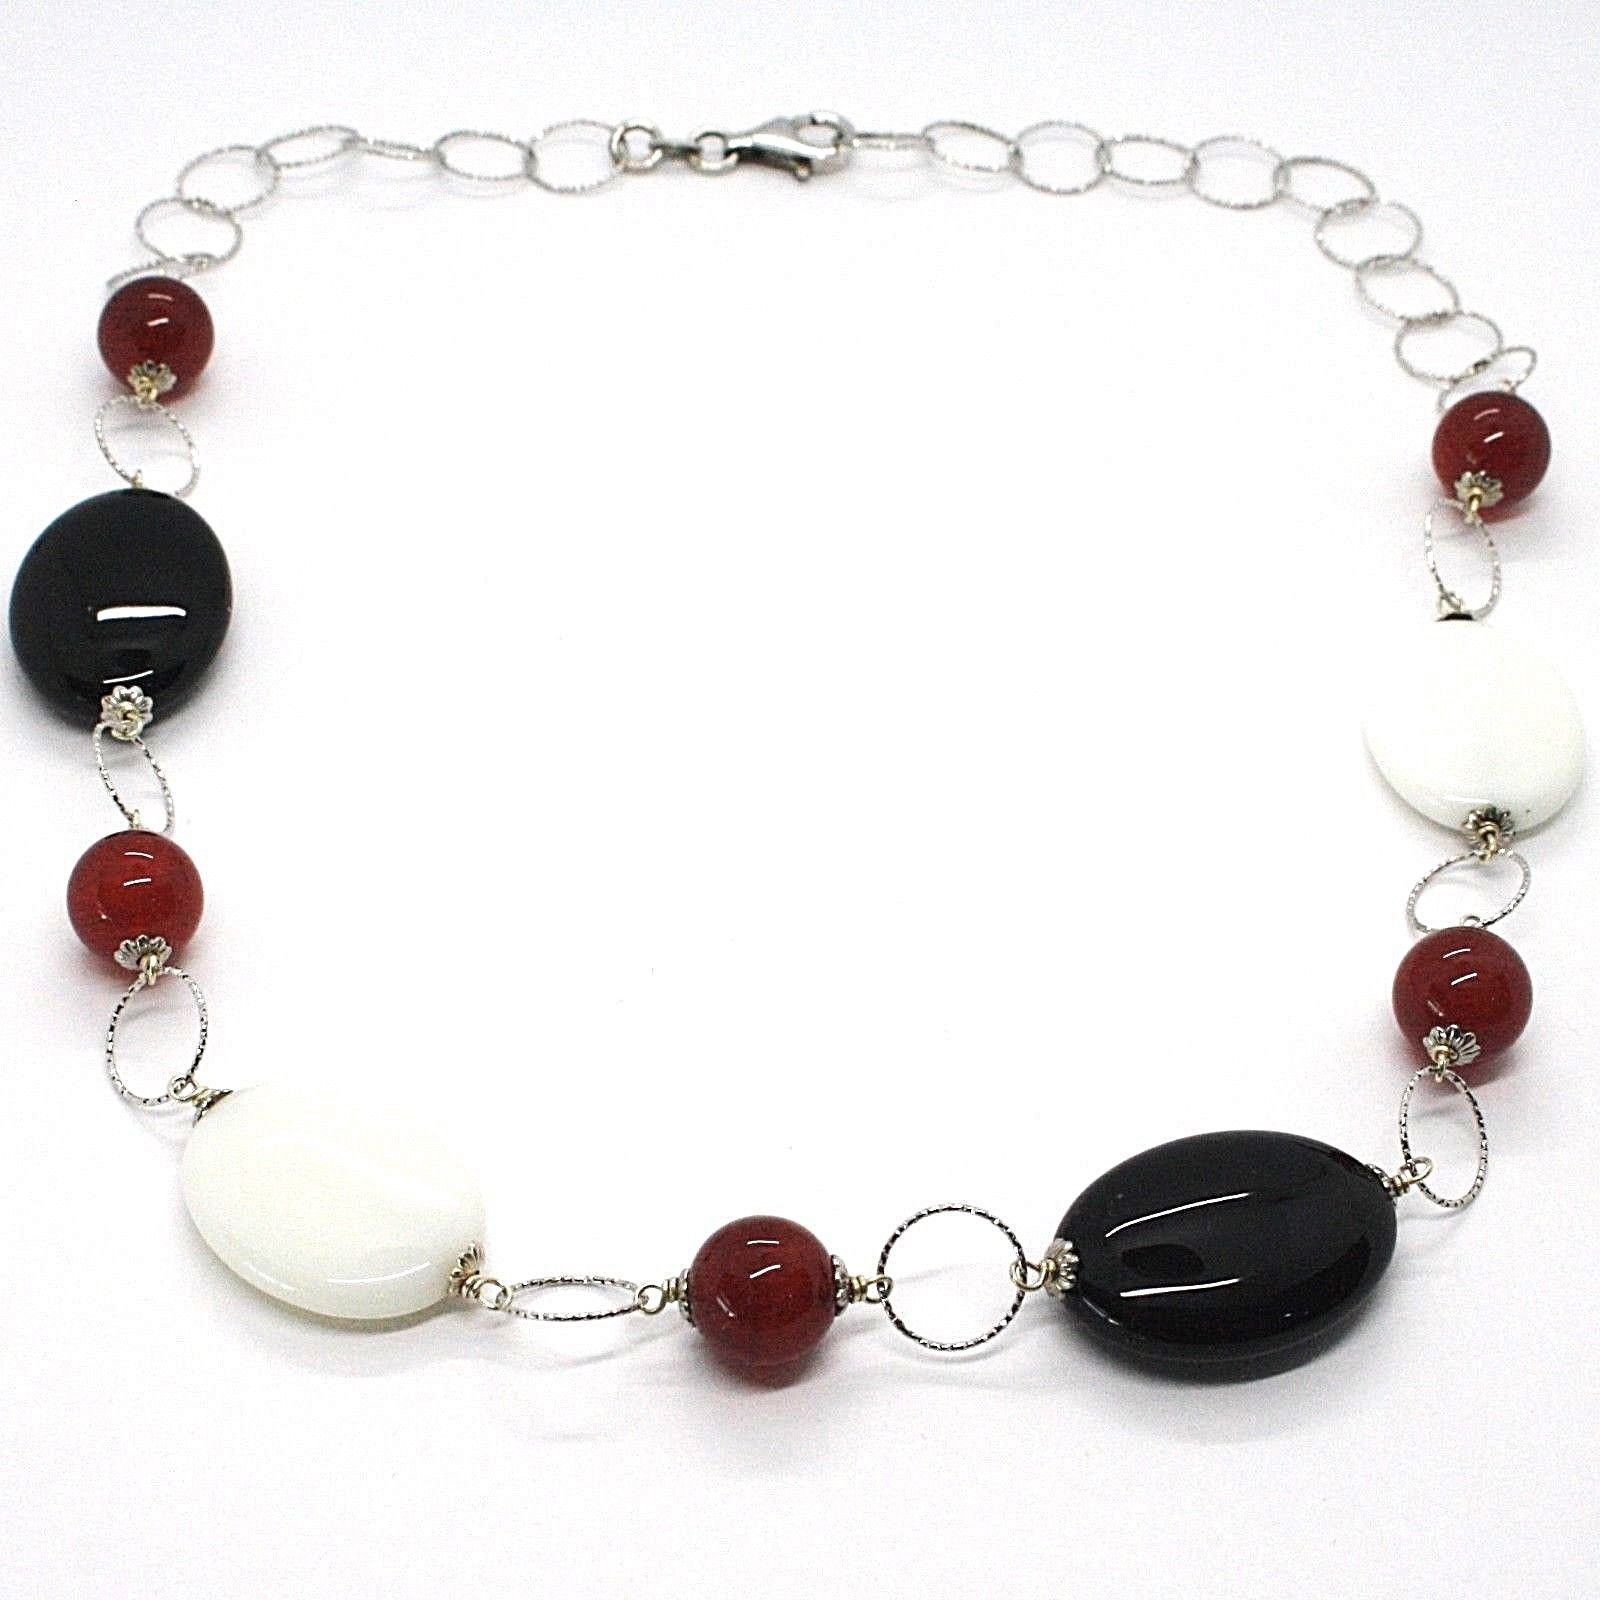 925 Silver Necklace, White Agate, Onyx, Carnelian, Chain Rolo worked